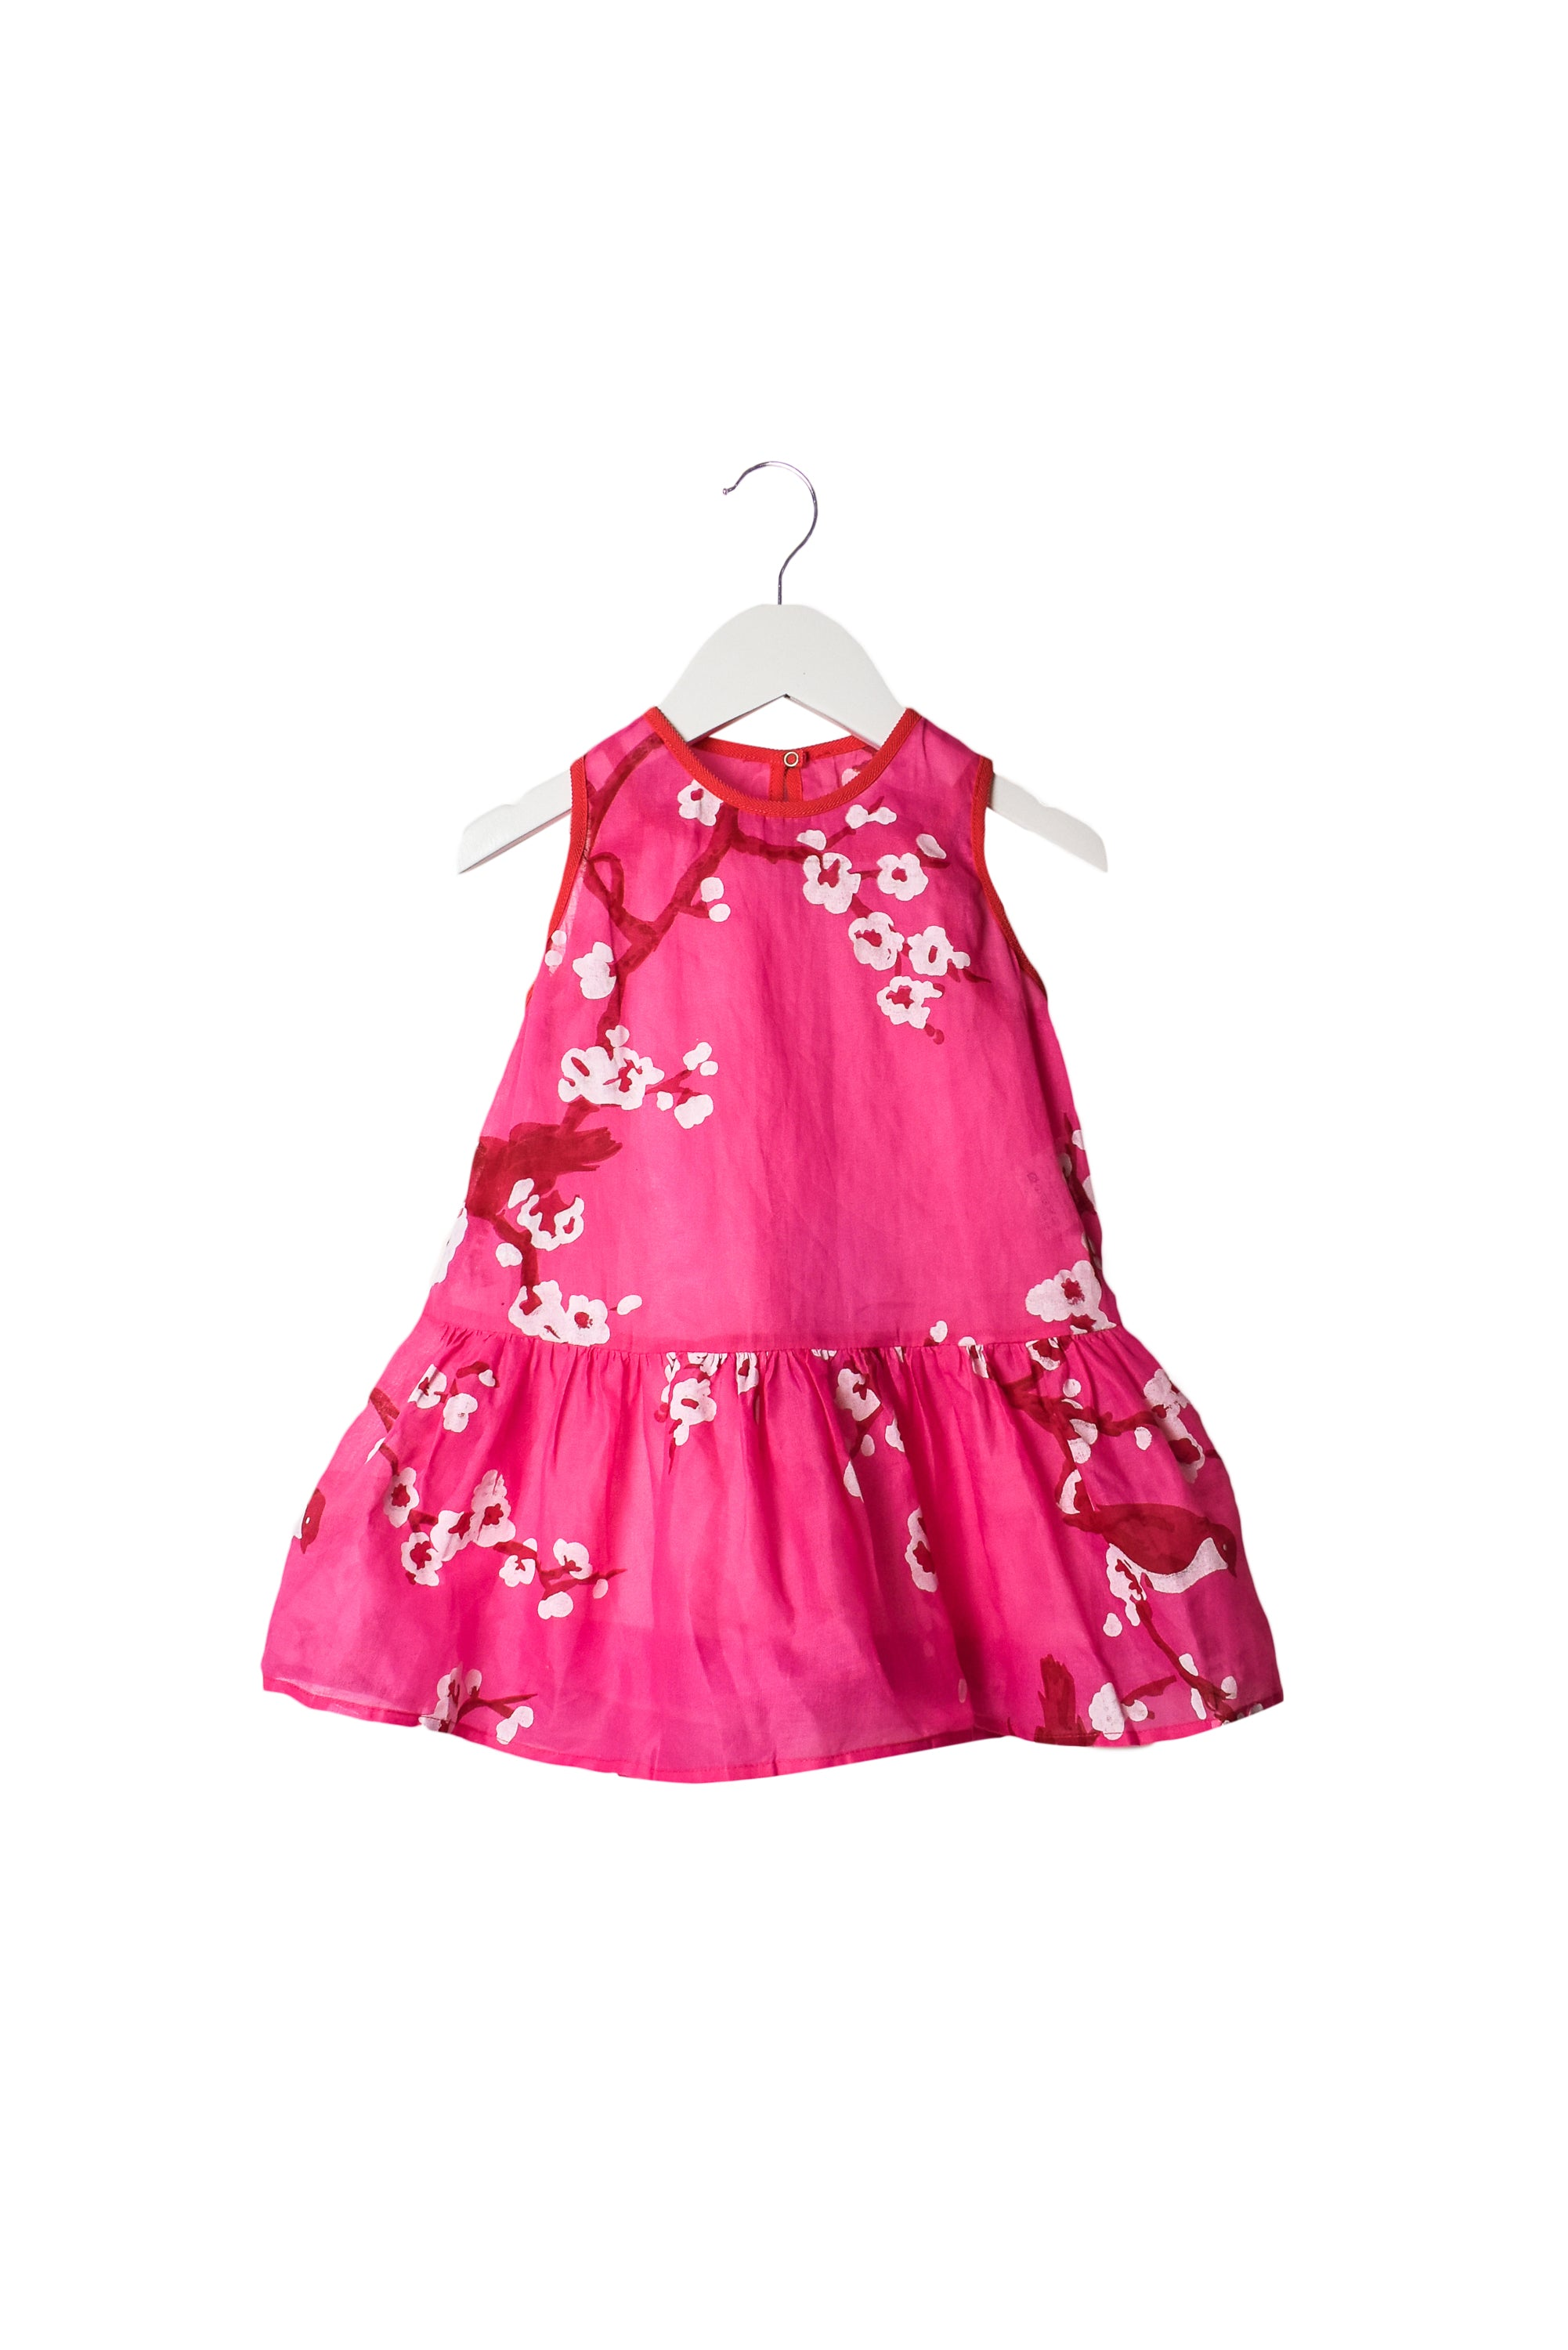 10007181 MiMiSol Kids~ Dress 2T at Retykle